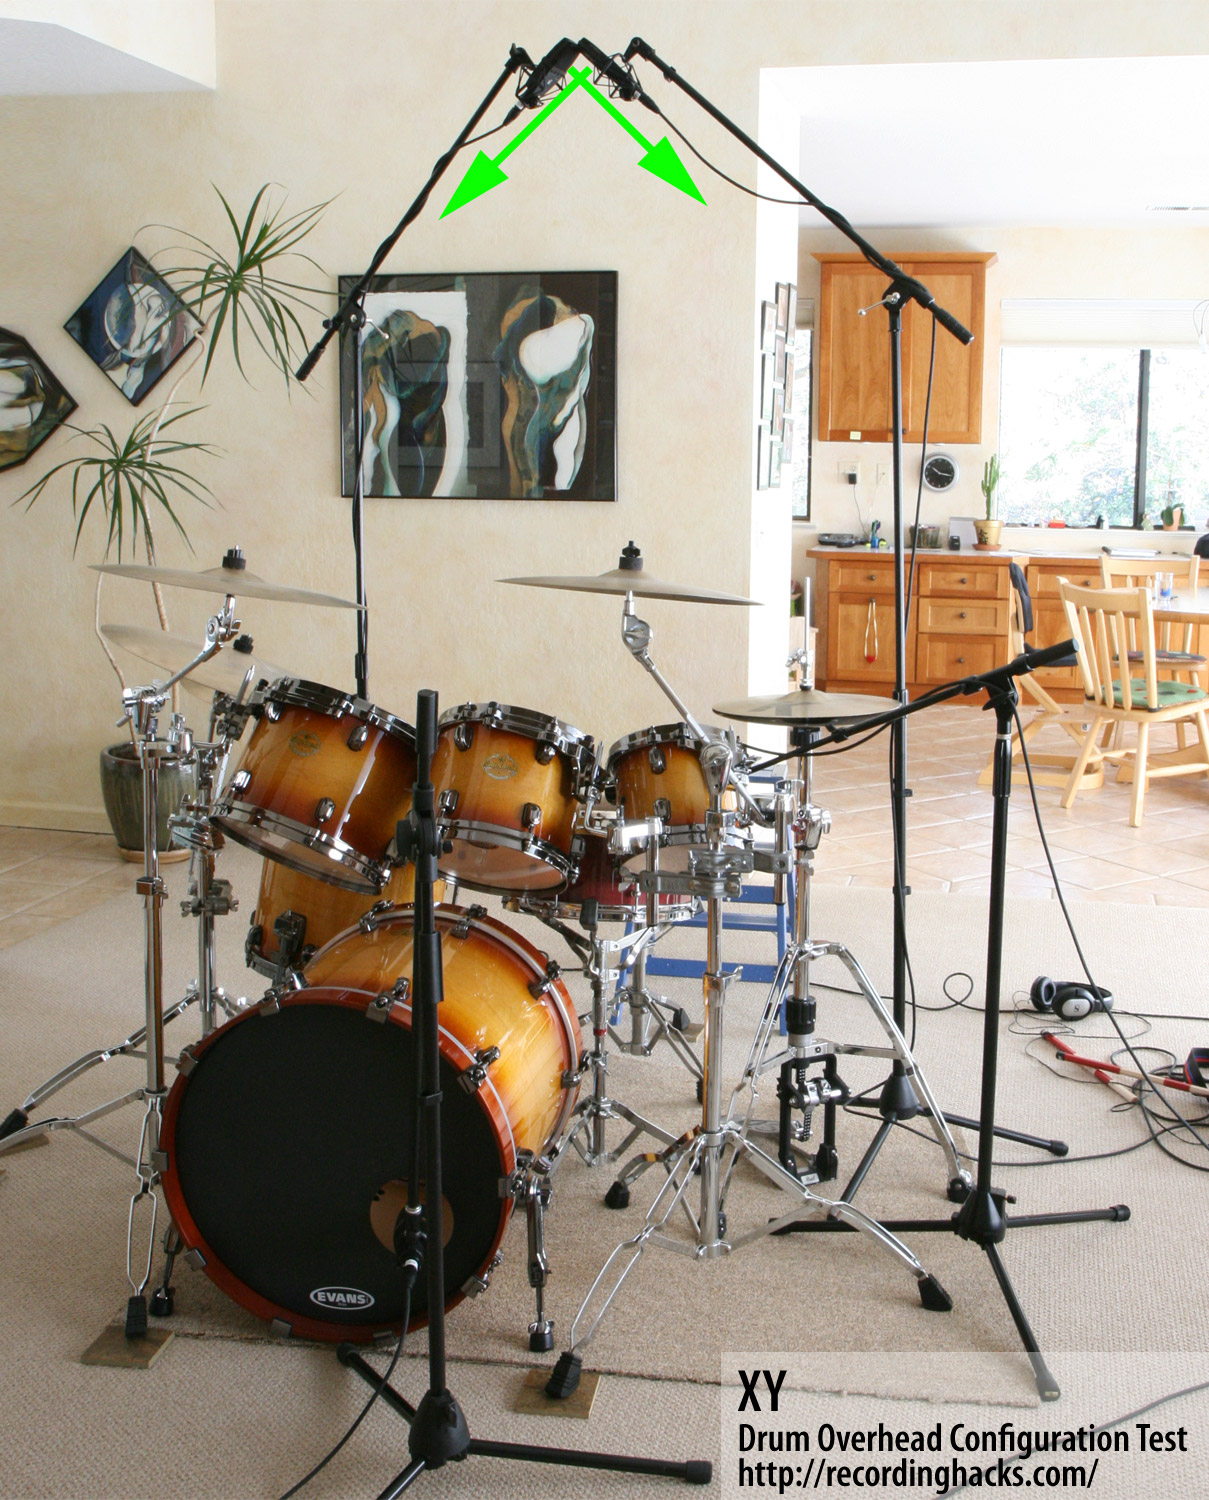 Miking A Drum Kit : comparing overhead drum miking techniques recording hacks ~ Russianpoet.info Haus und Dekorationen